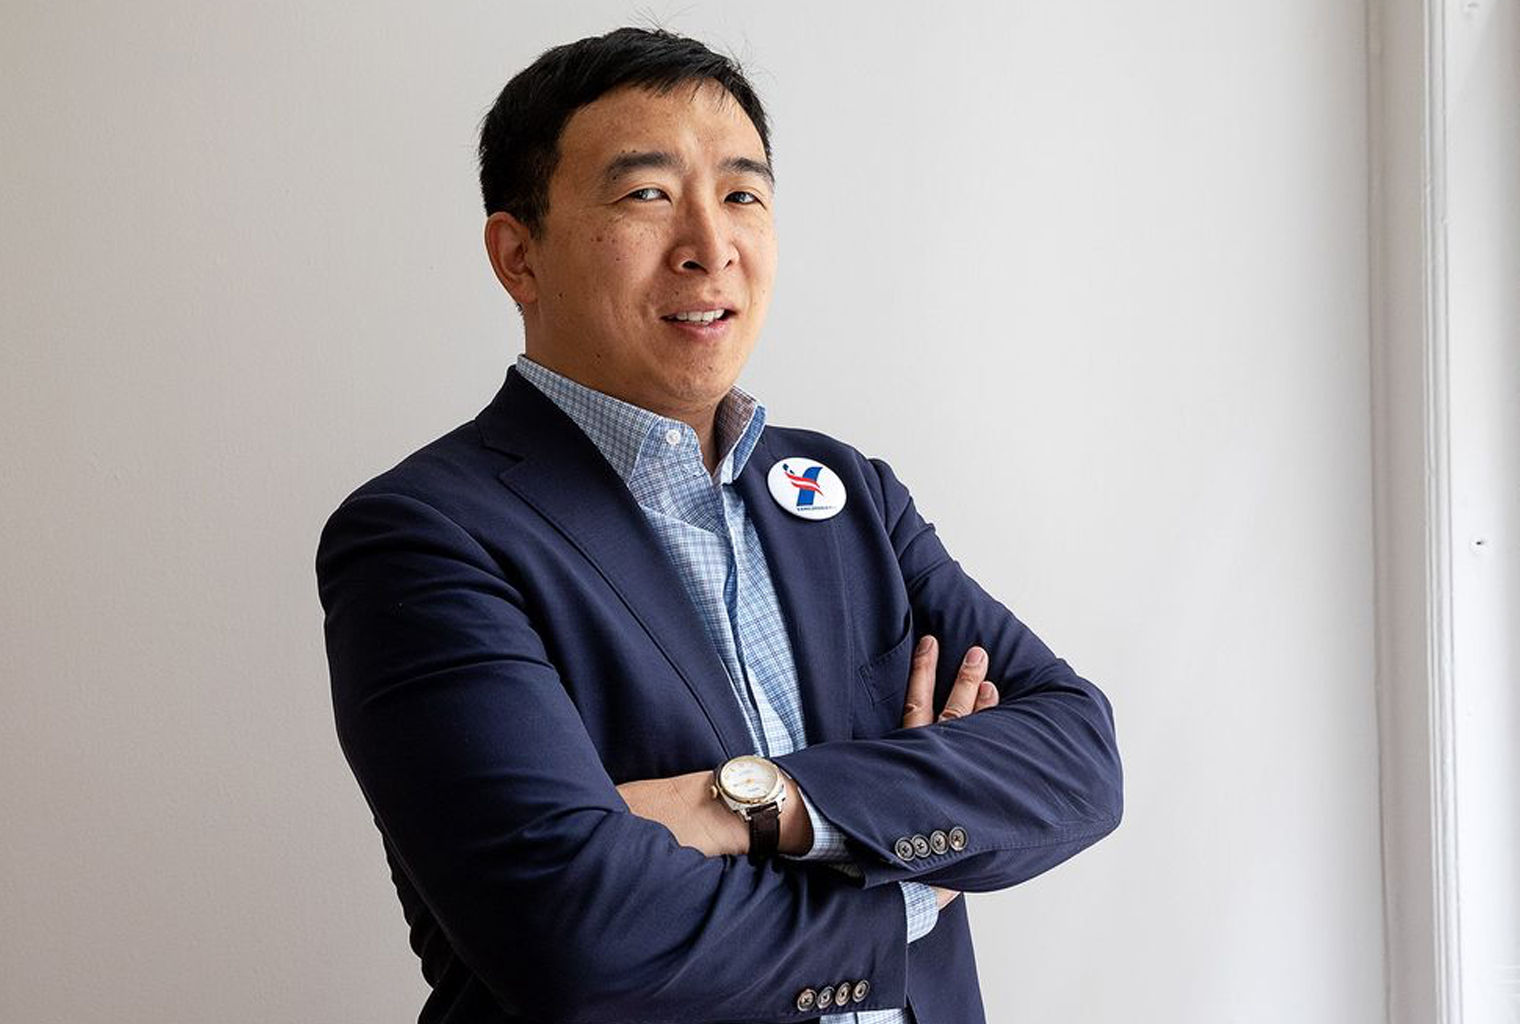 Presidential Candidate Andrew Yang Discusses His Plan for Cryptocurrencies